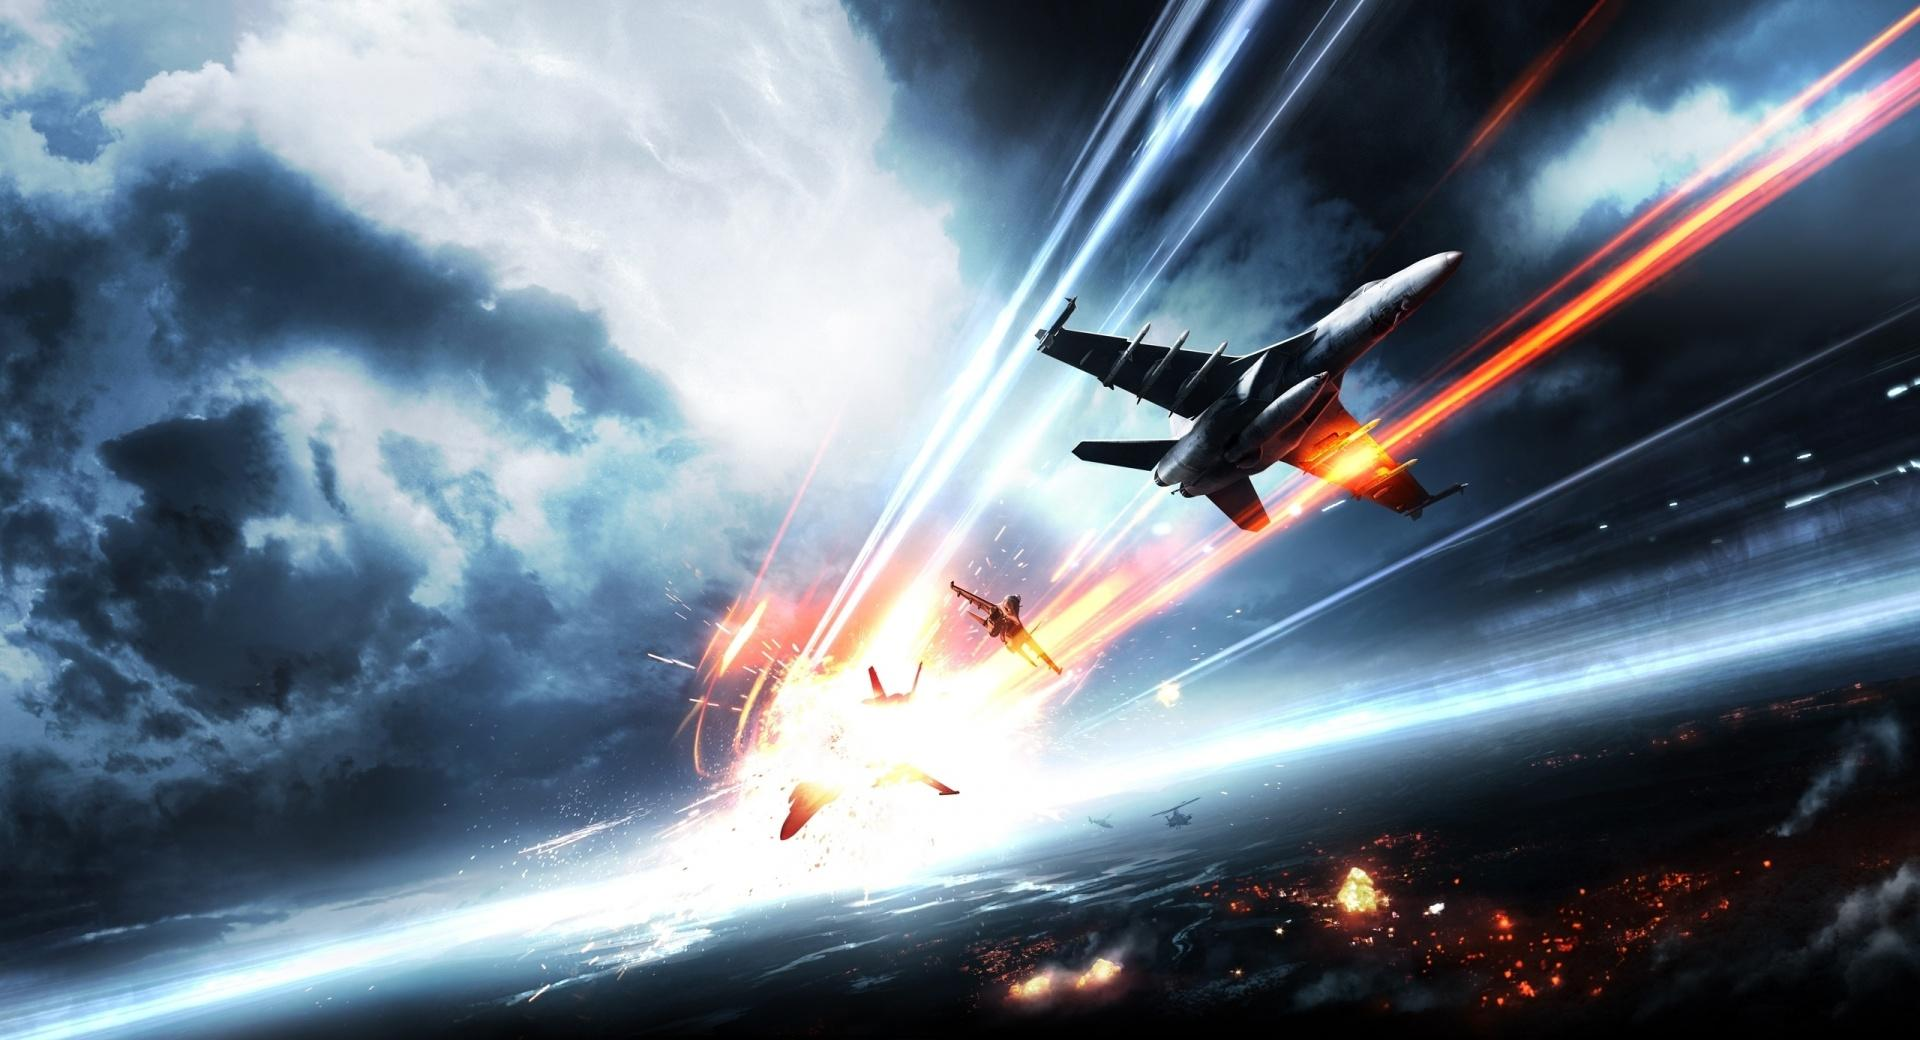 Battlefield 3 - Aircrafts at 640 x 1136 iPhone 5 size wallpapers HD quality